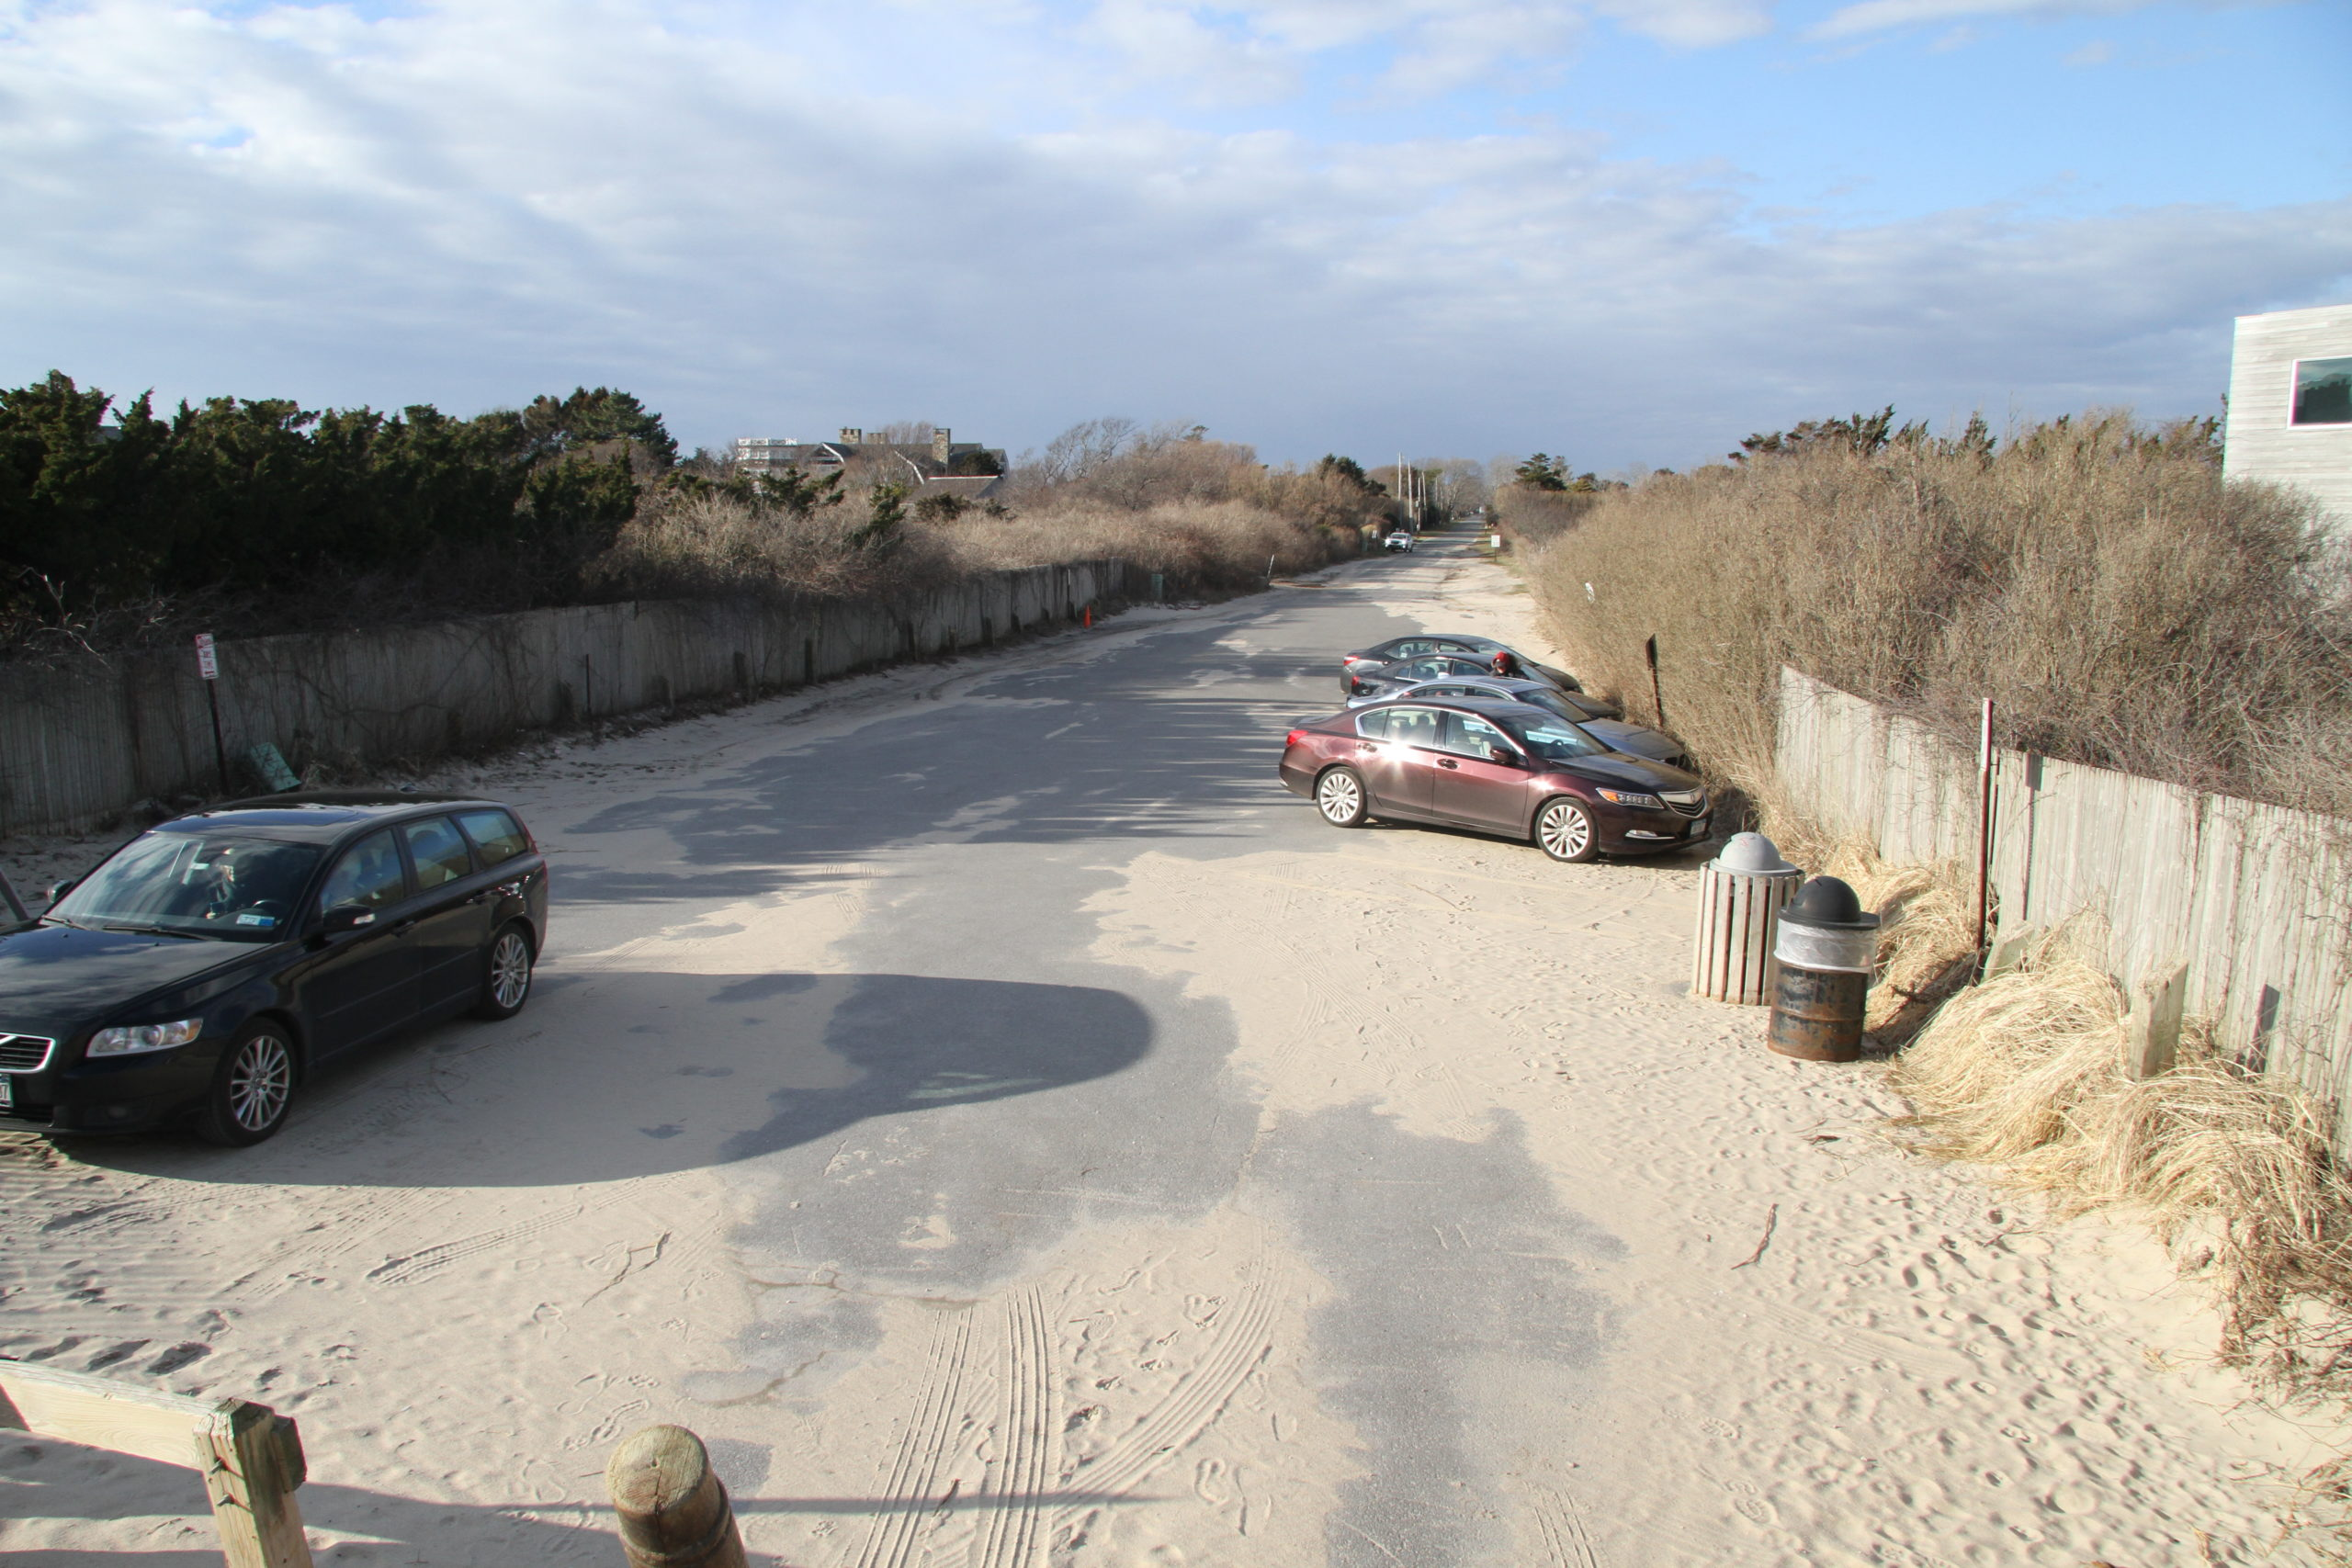 The East Hampton Town Trustees and East Hampton Town Board this week approved agreements to bring the power cable from the South Fork Wind Farm ashore at Beach Lane in Wainscott.